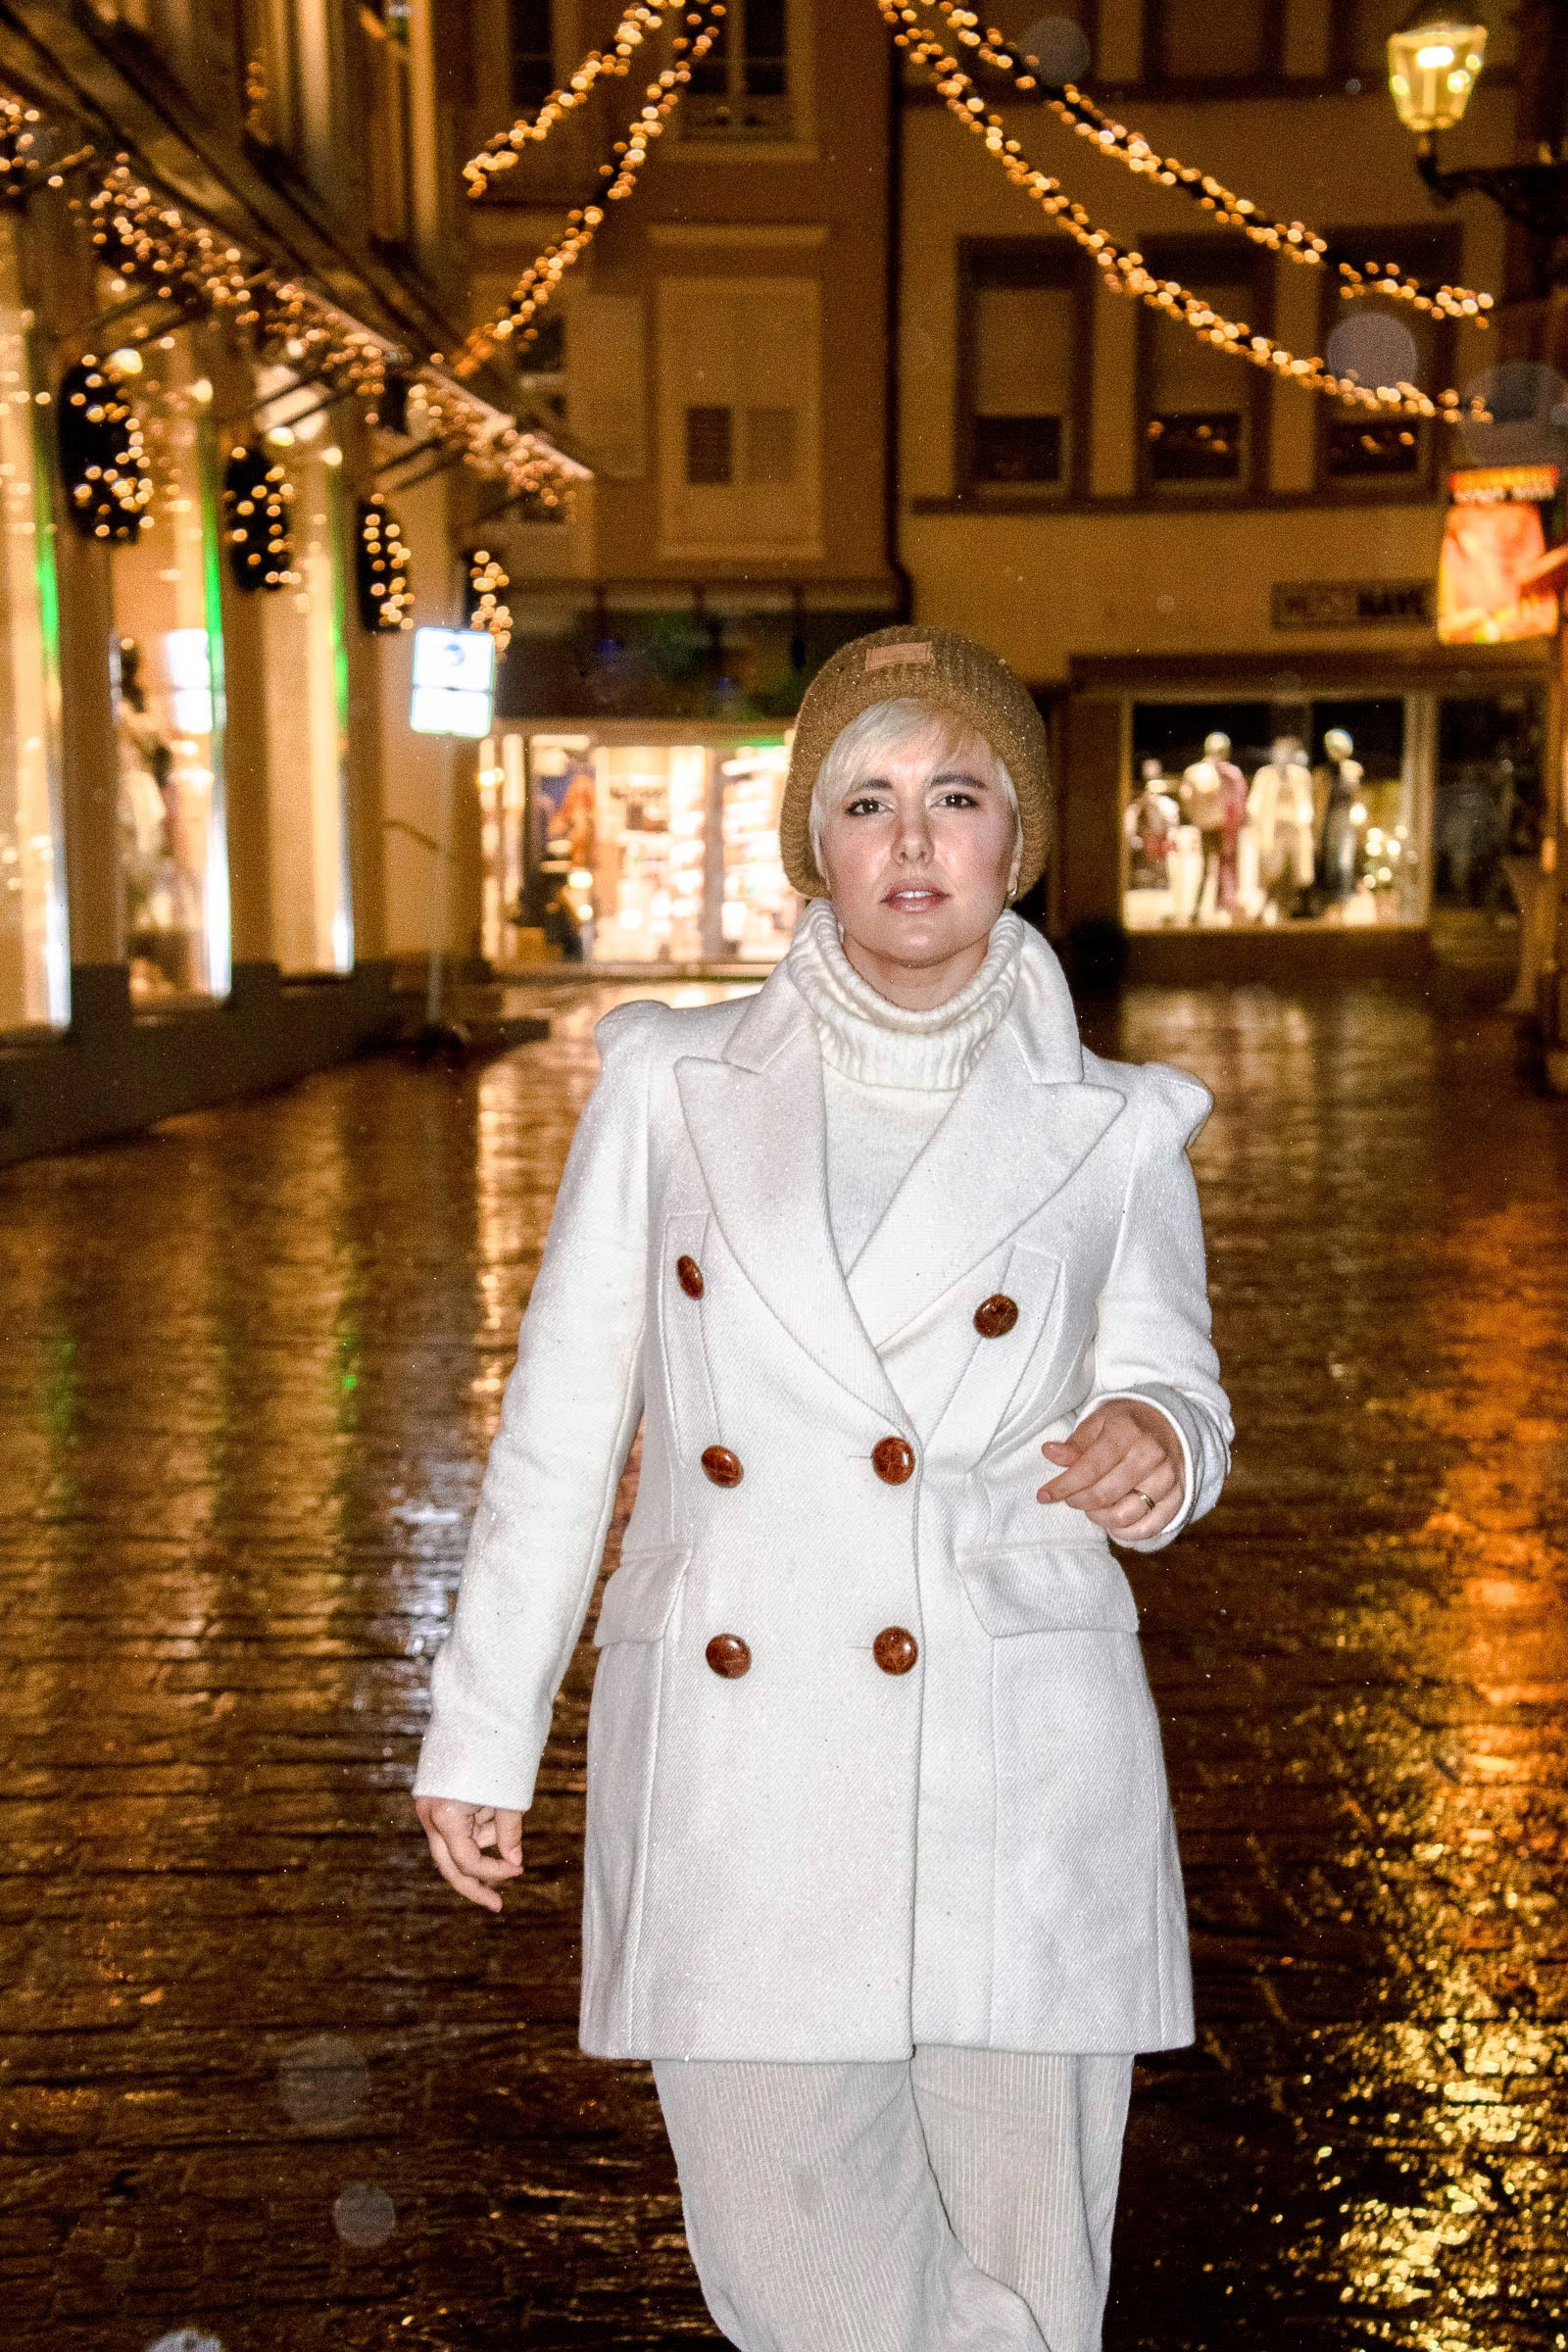 vWinter White Style Challenge @RebeccaInEurope